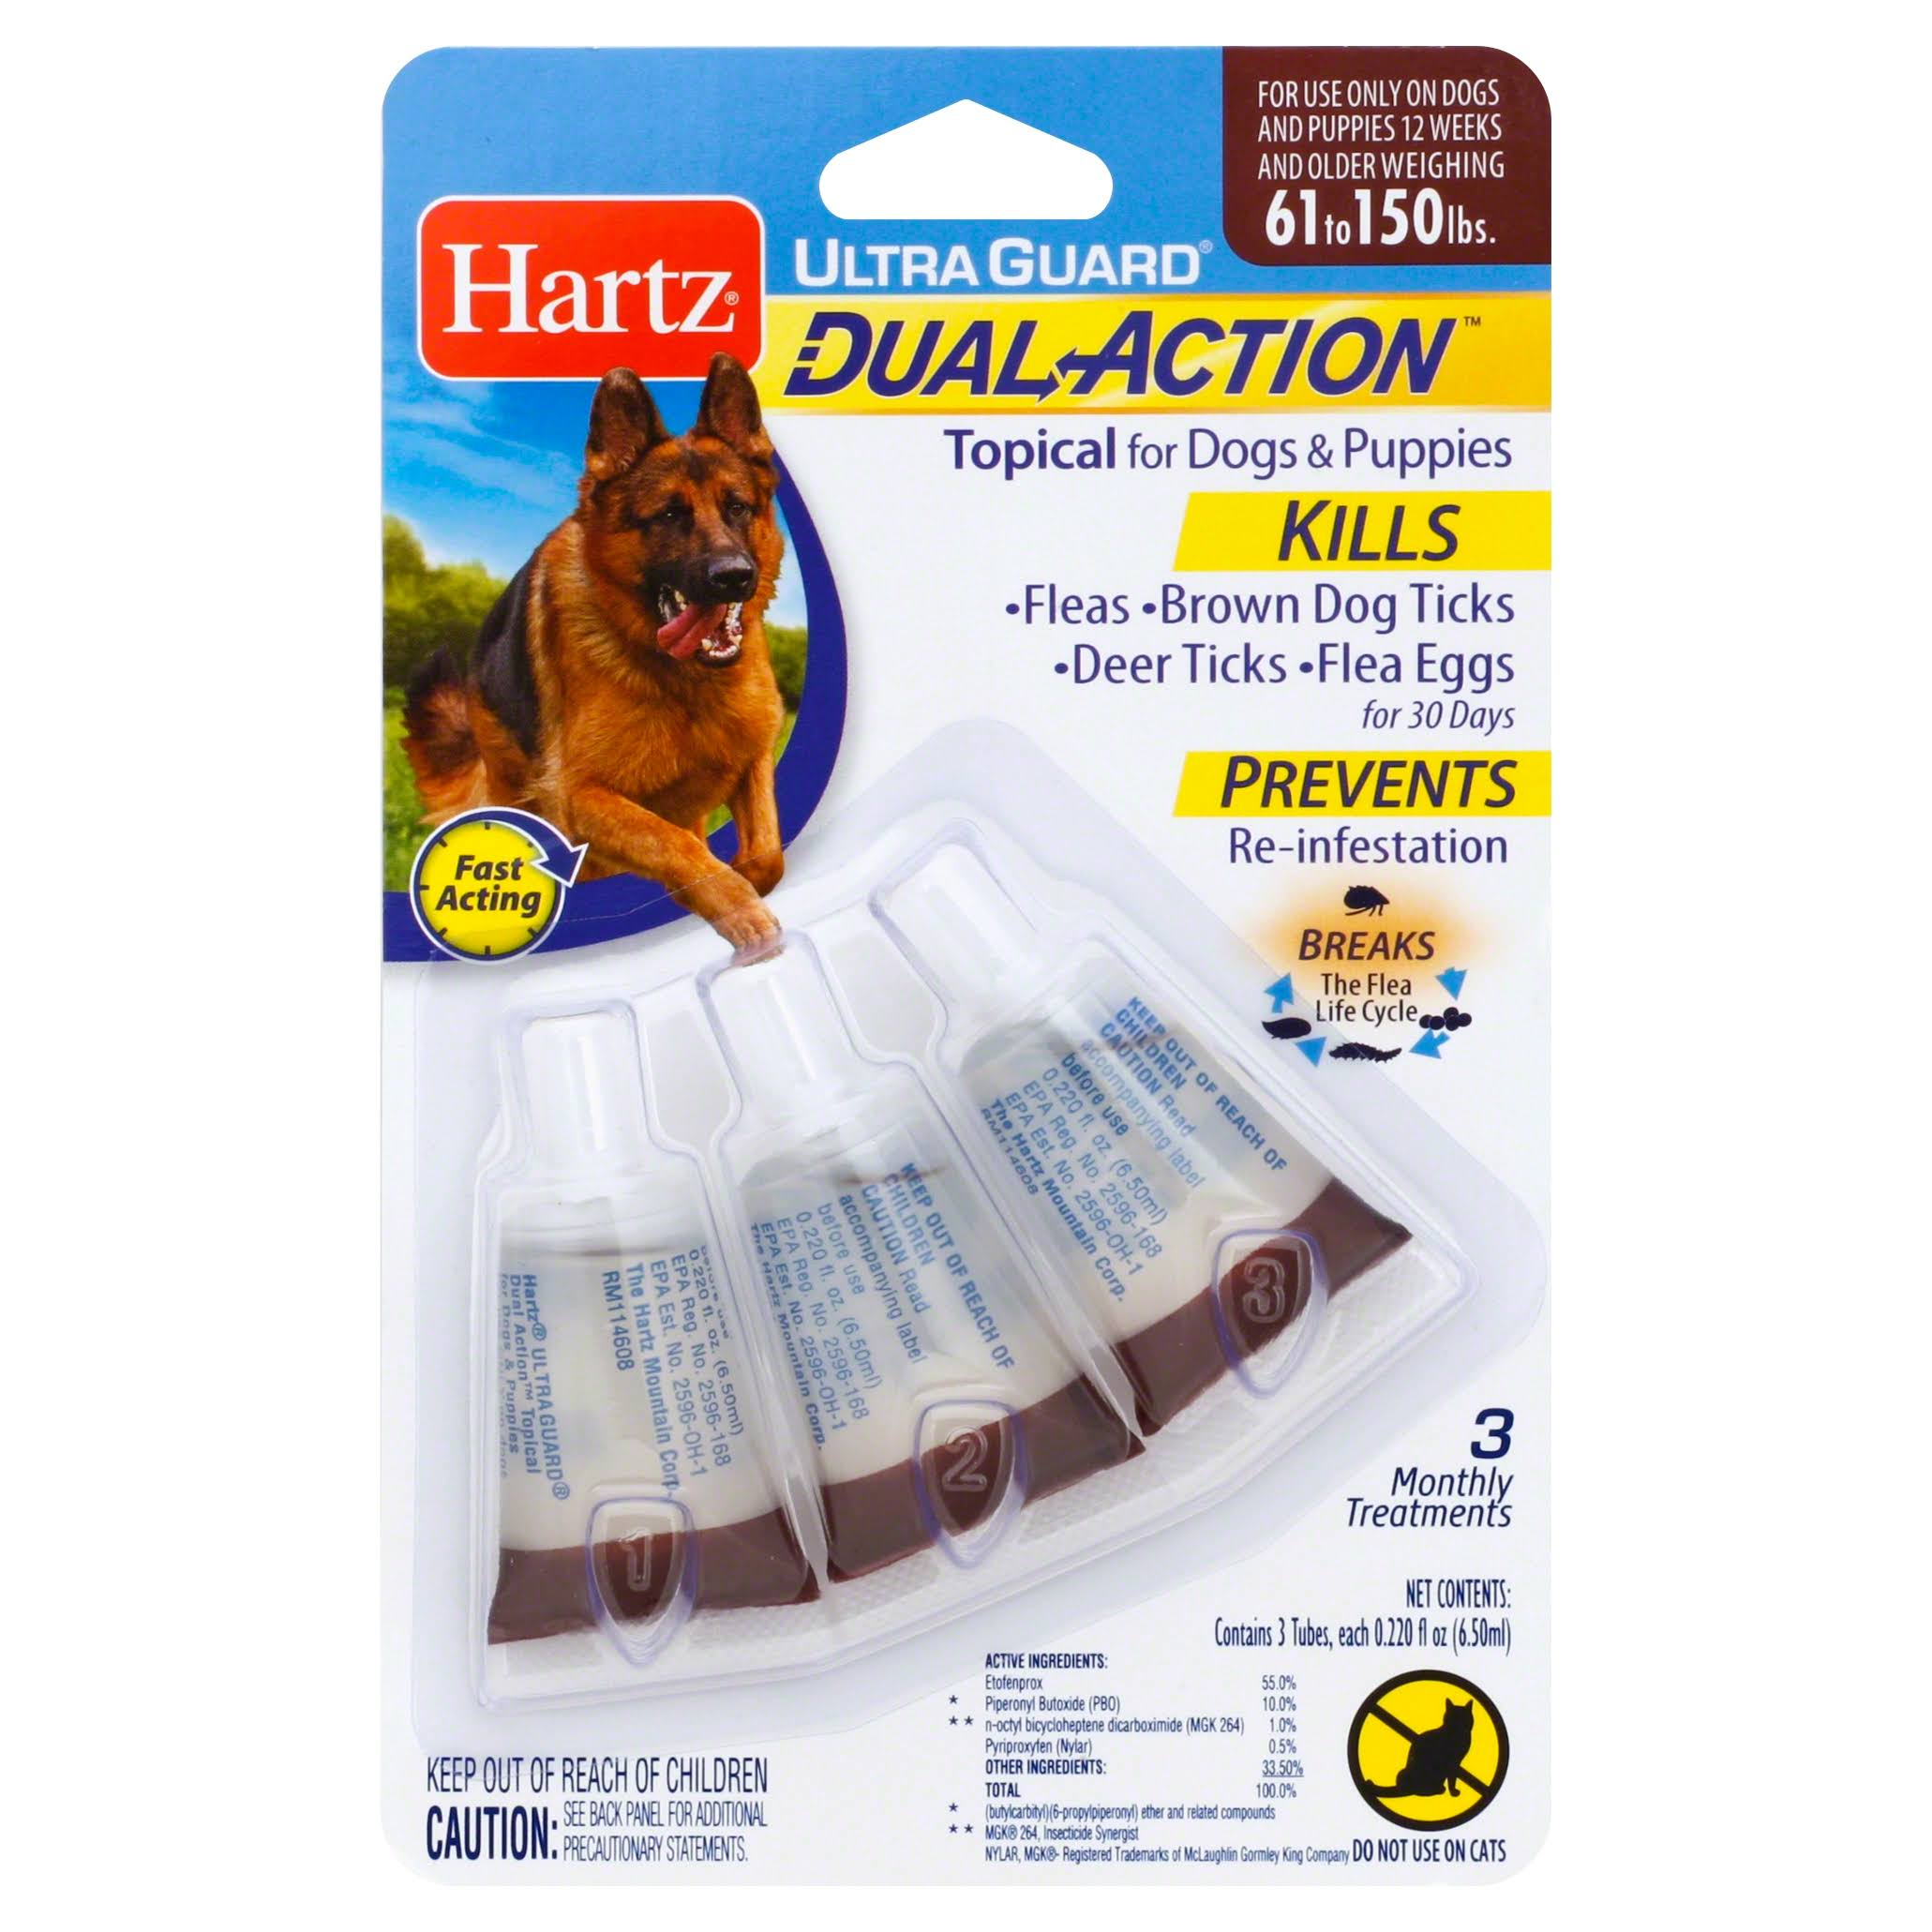 Hartz Ultraguard Dual Action Flea and Tick Treatment - for Dogs and Puppies